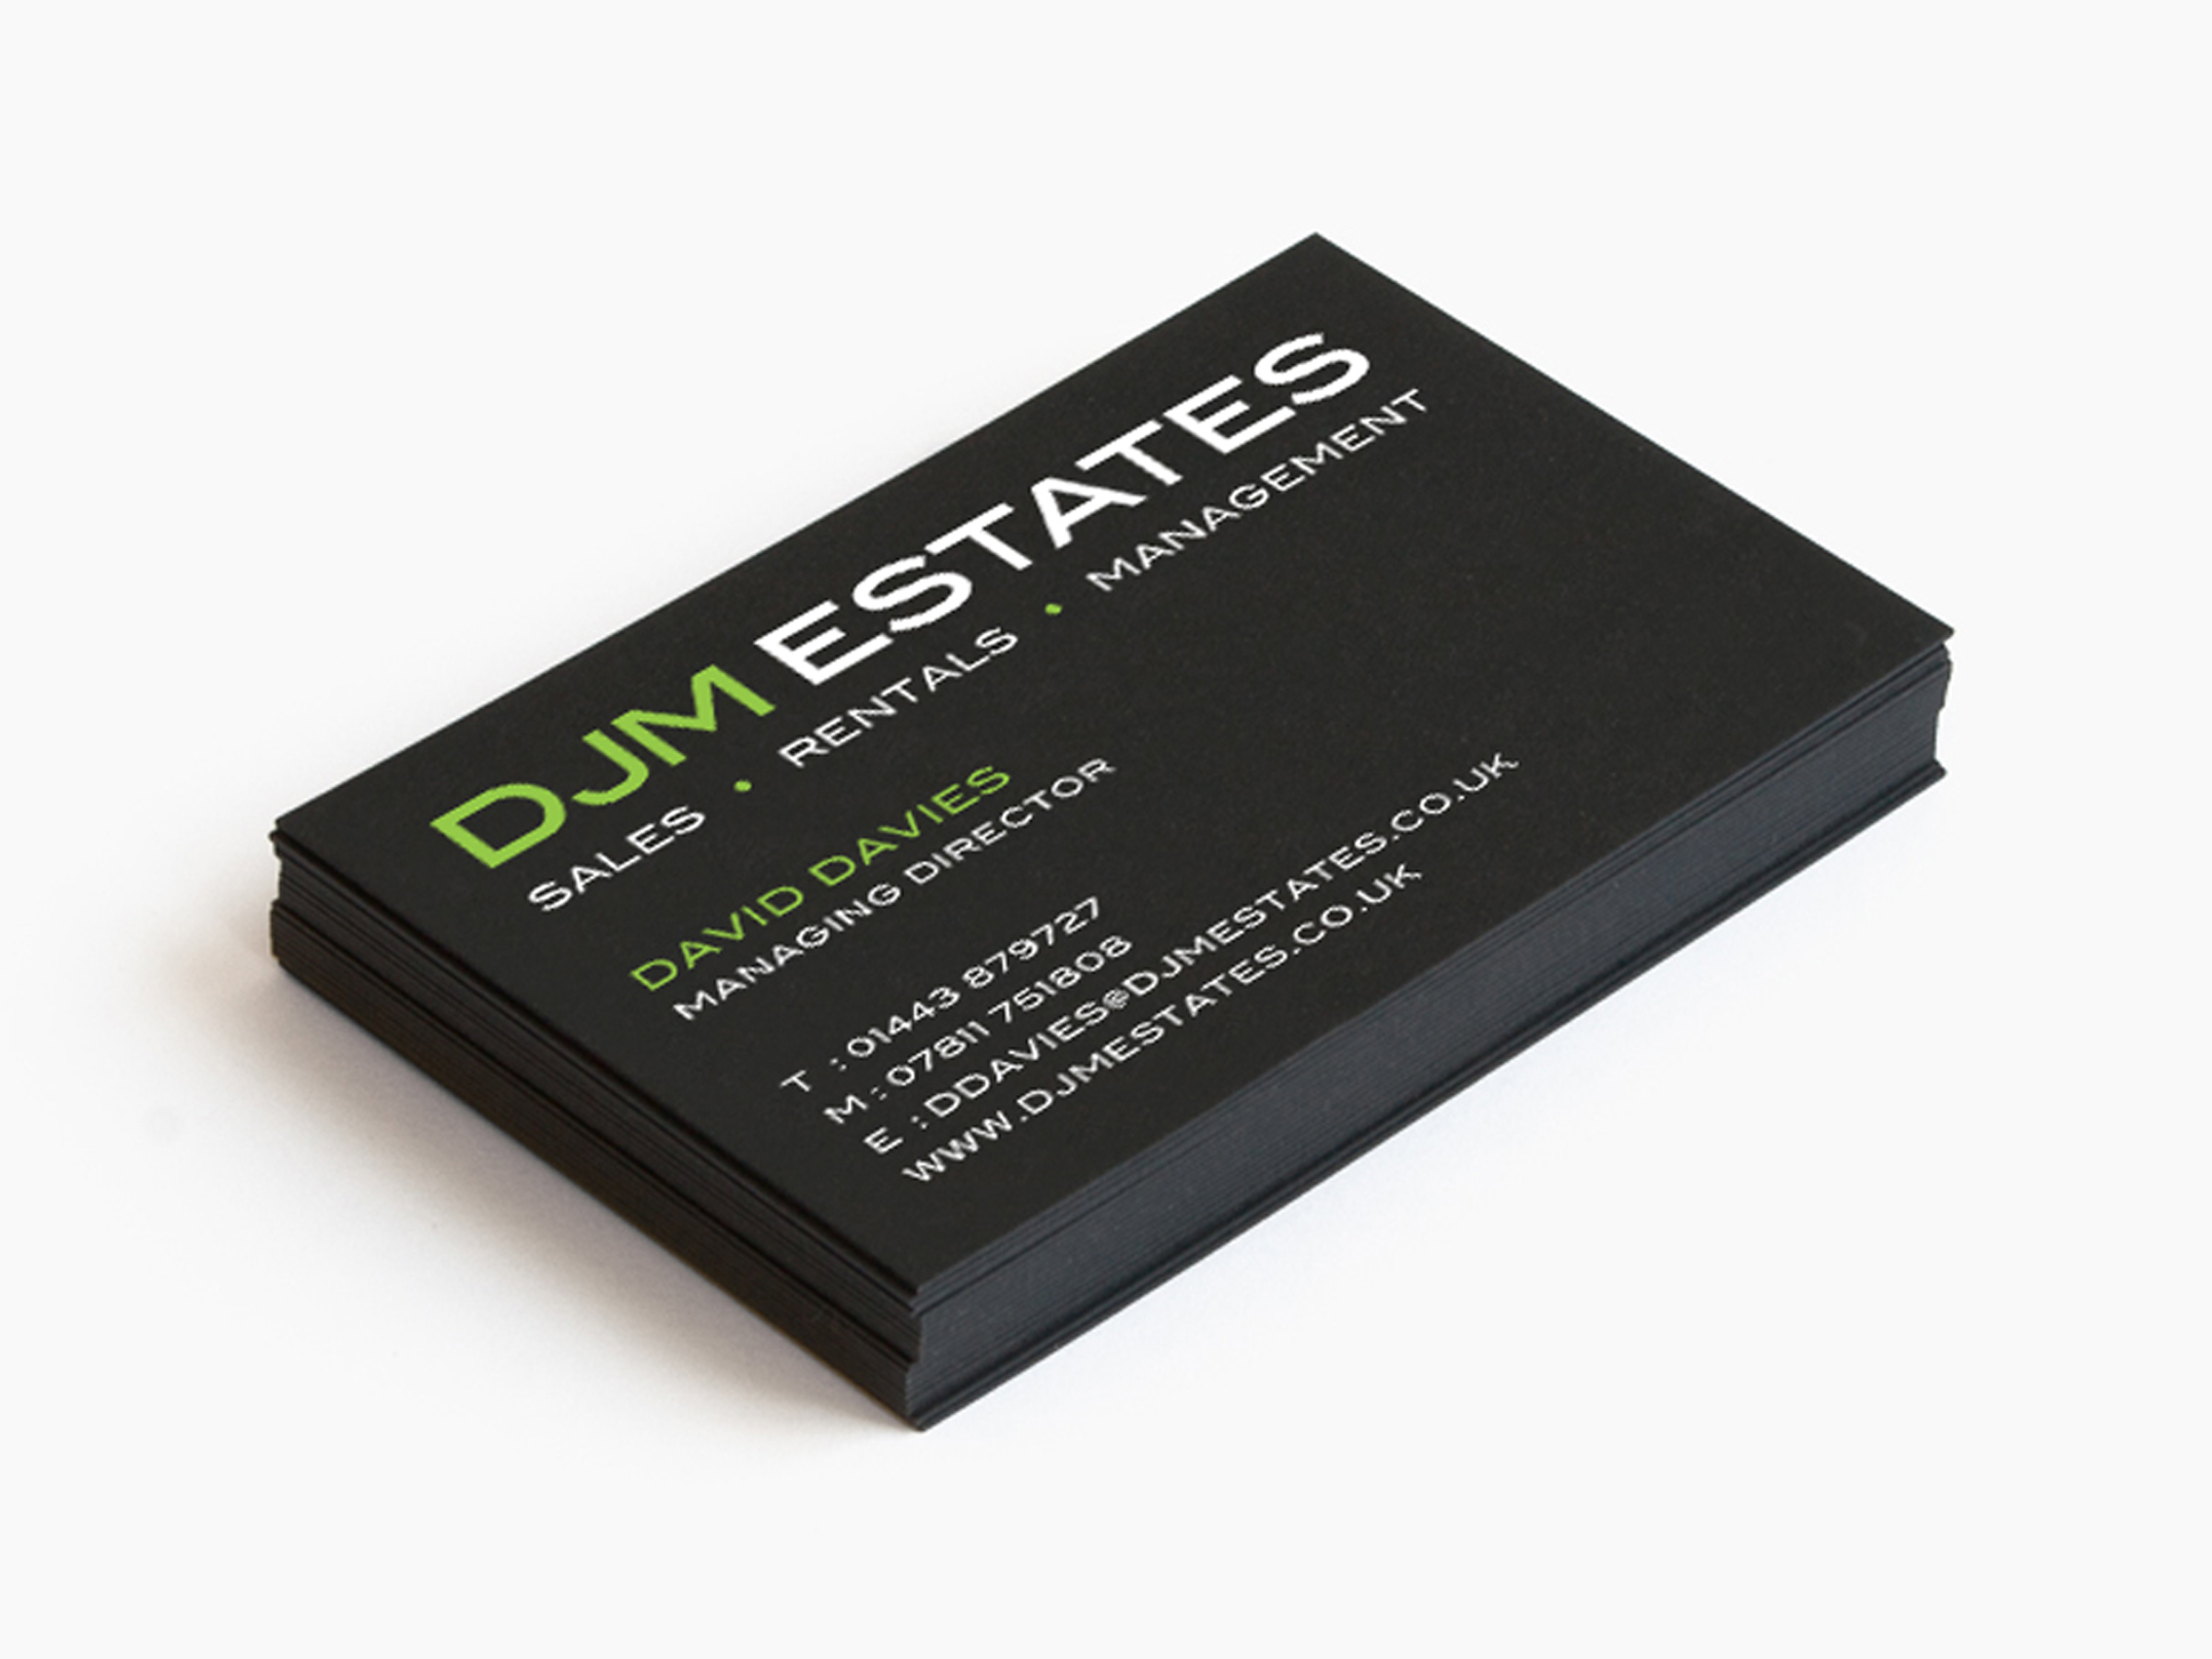 DJM Estates_business card.JPG